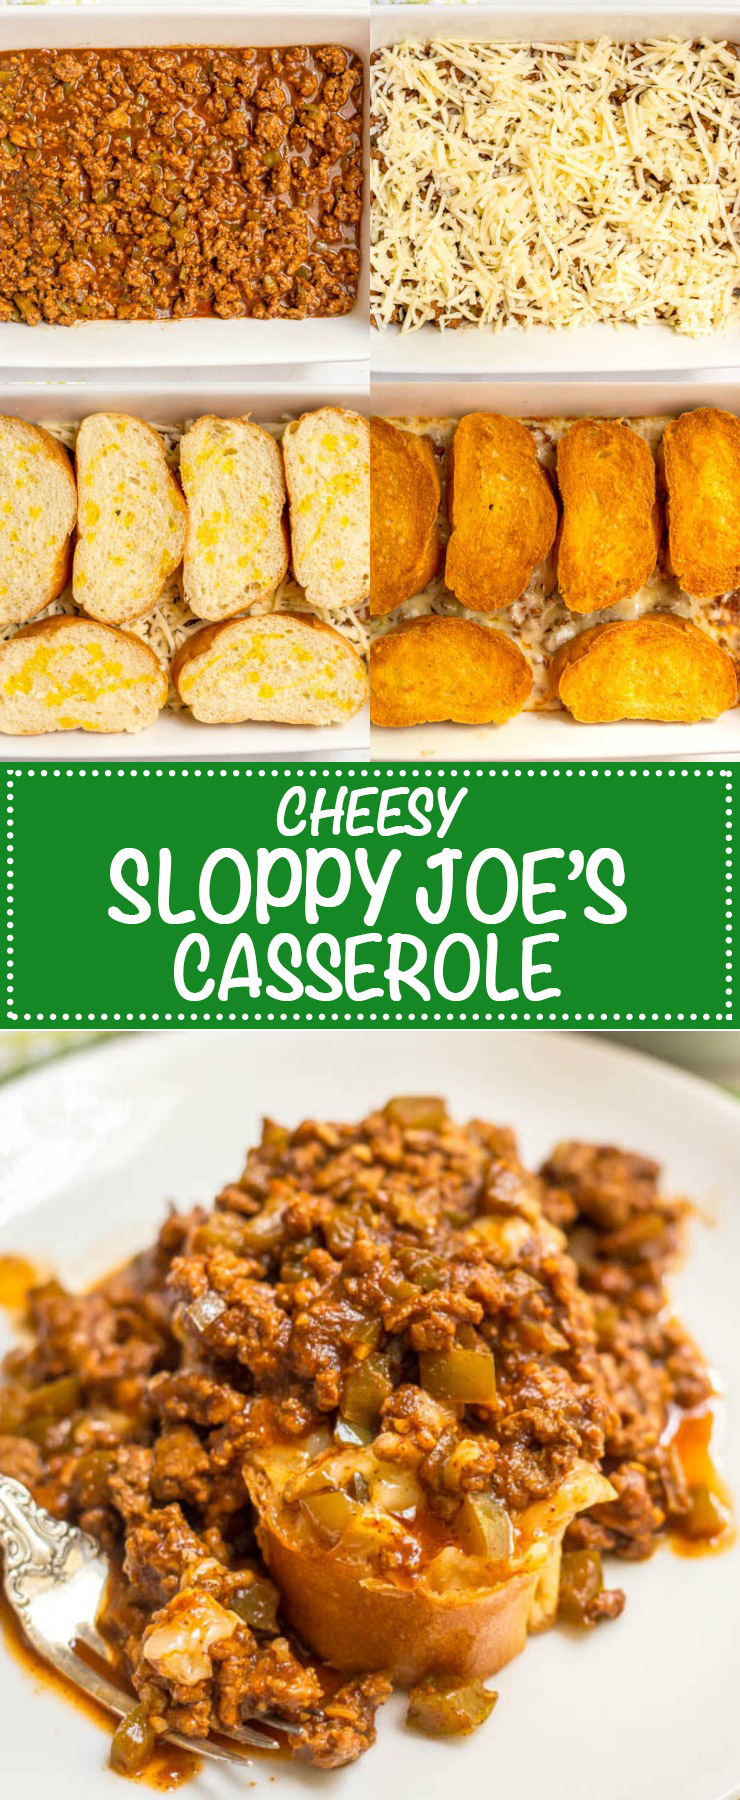 A collage of process photos for making cheesy sloppy Joe's casserole with a text overlay on the collage